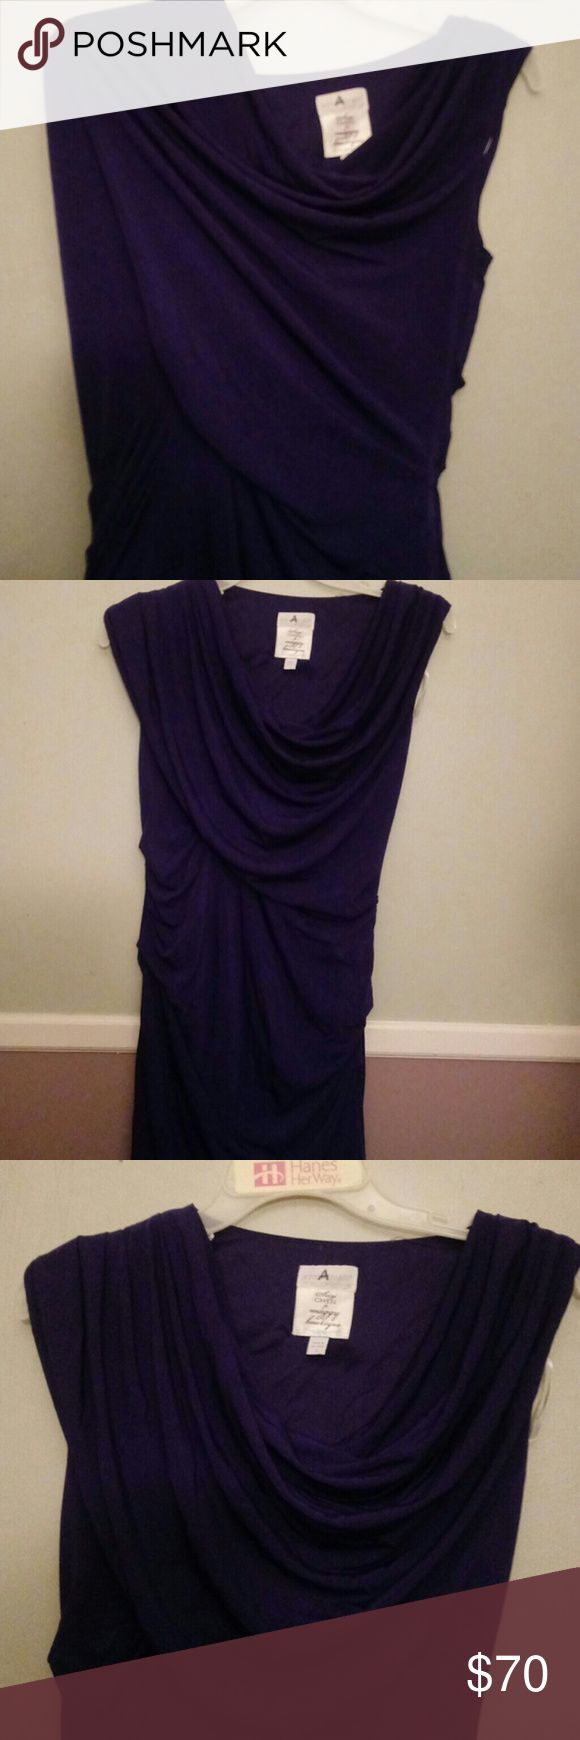 """Maternity Dress Pea In The Pod Maternity Dress. Dark Purple. draping wide on left shoulder. Zips up the left. Lots of stretch. Size small. Suzi Chin for maggy boutique. Beautiful dress for any woman! Like New! Length 37"""" pit to pit unstretched 15"""" Suzi Chin for Maggy Boutique Dresses"""